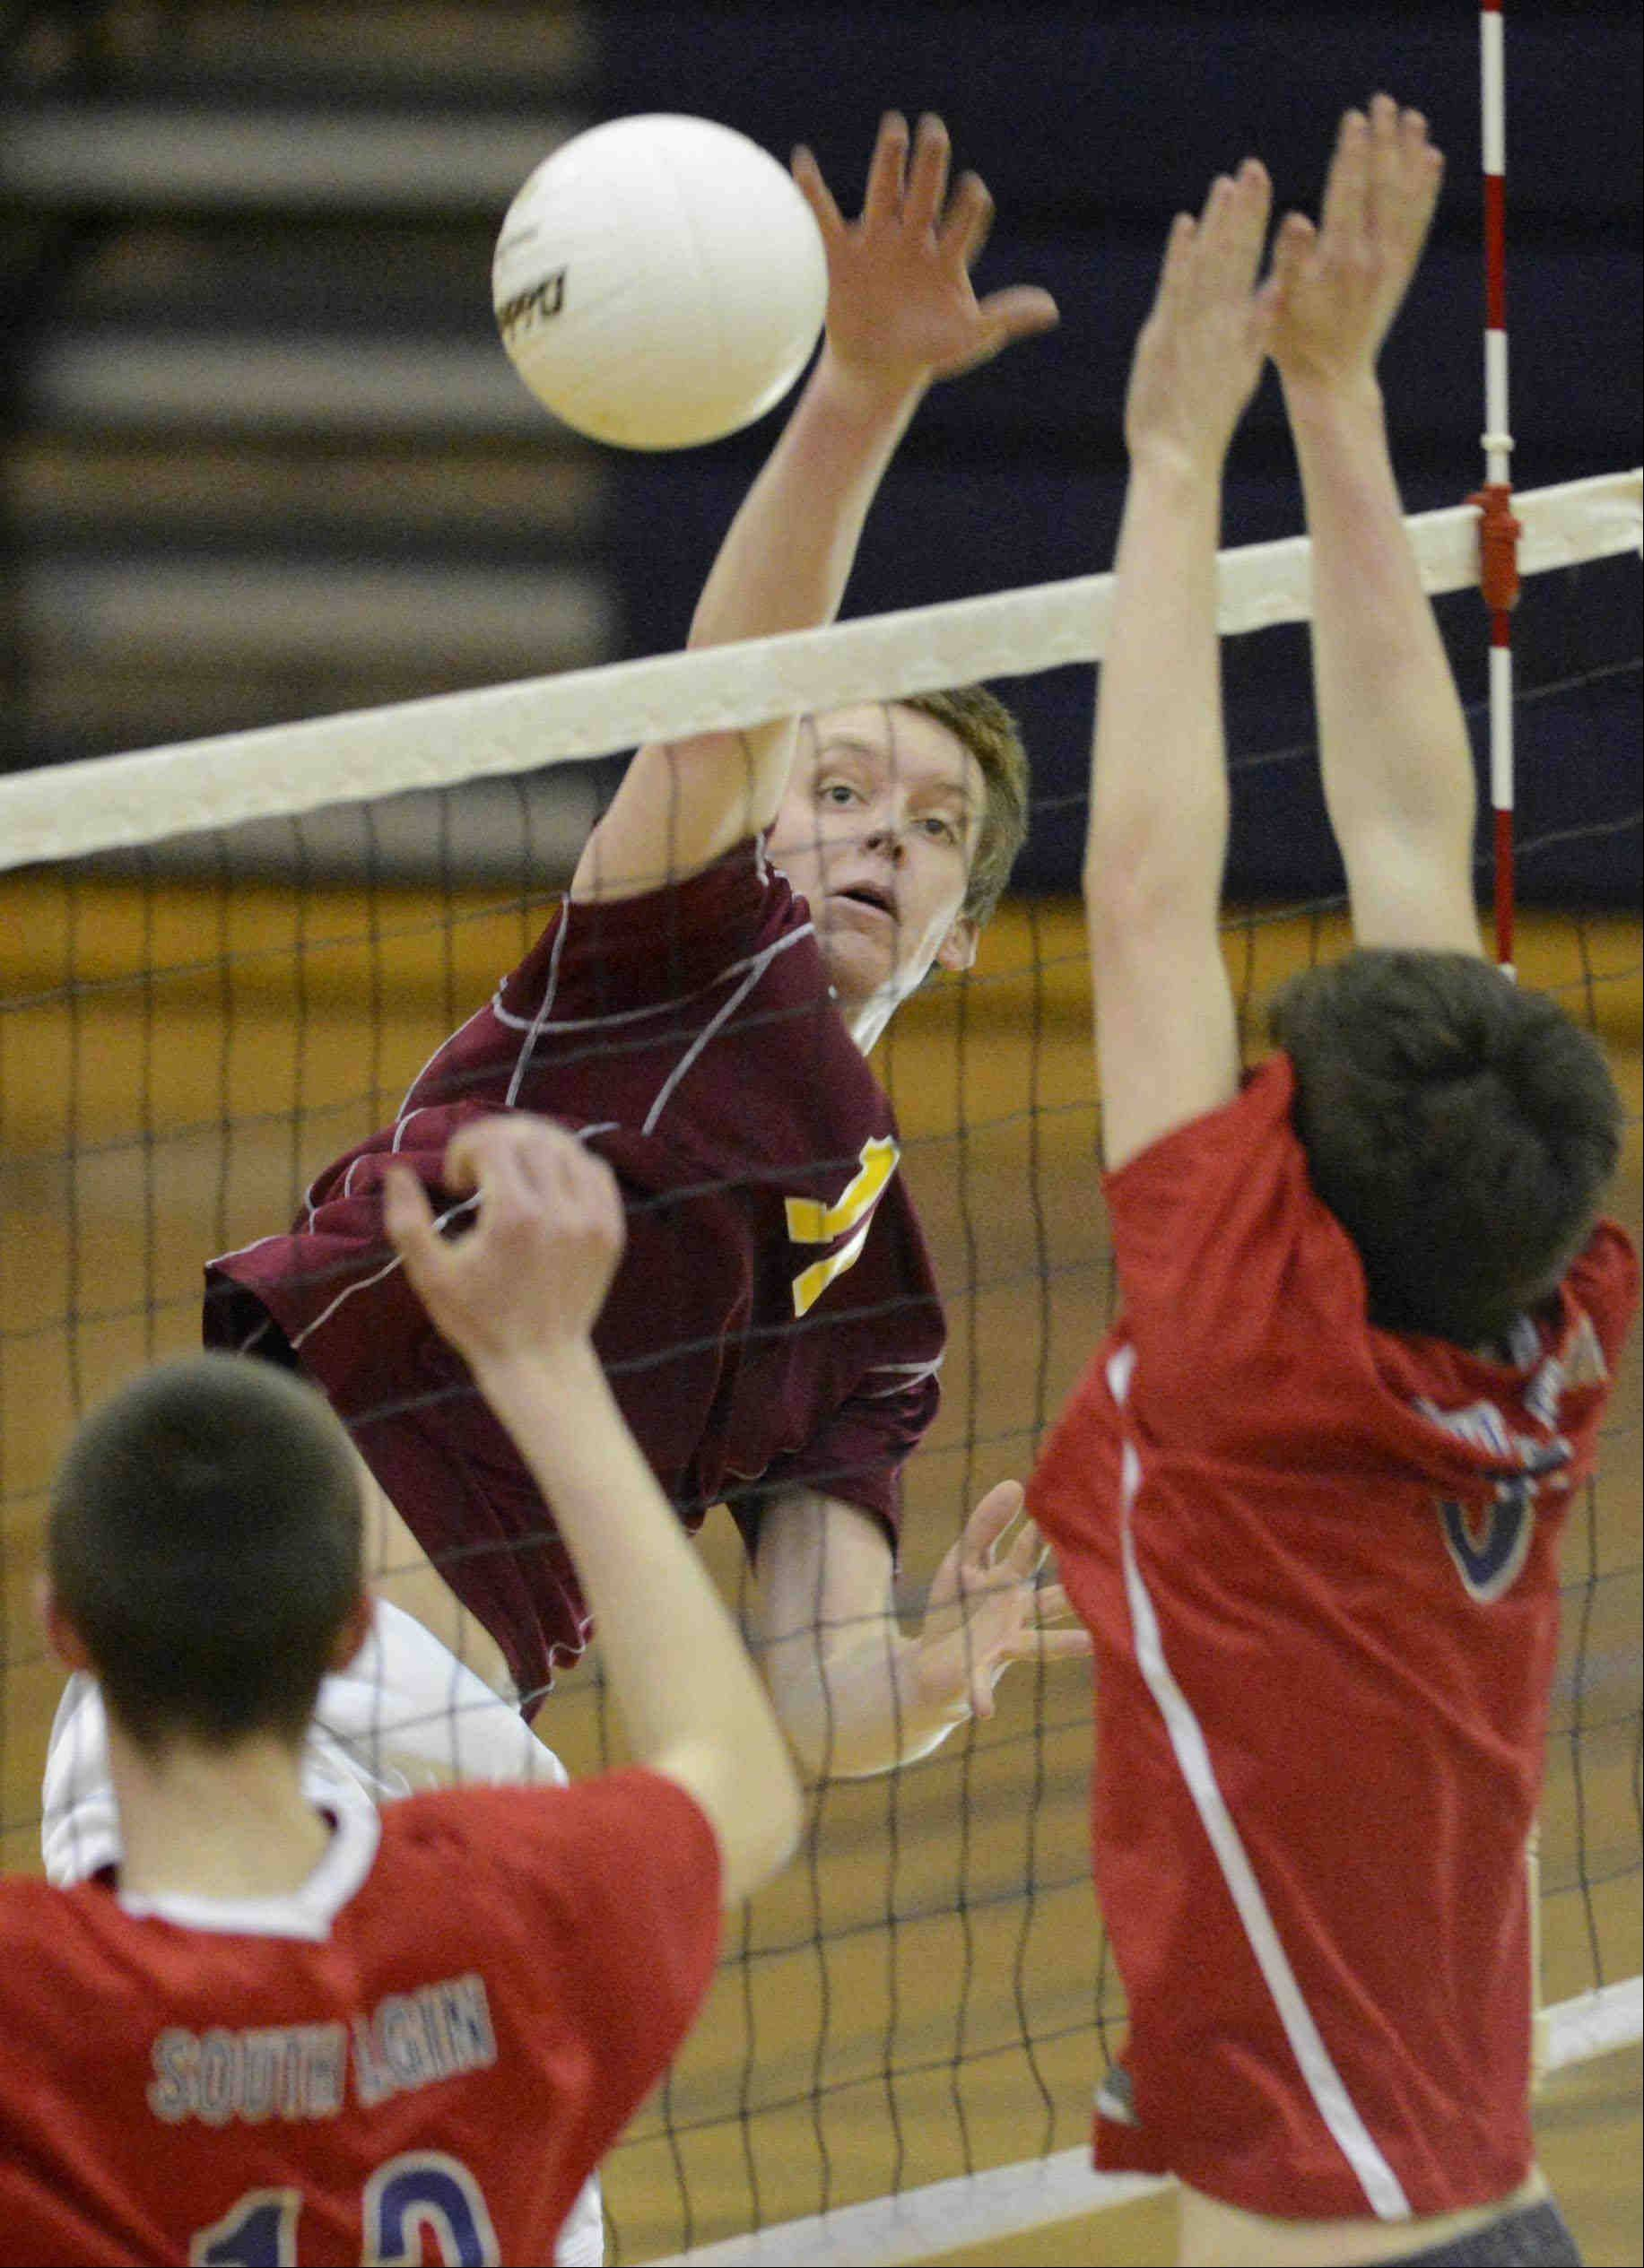 Schaumburg's Stephen Knitter gets a shot past South Elgin's Ian Saxton and Jake Dinneen Thursday in South Elgin.